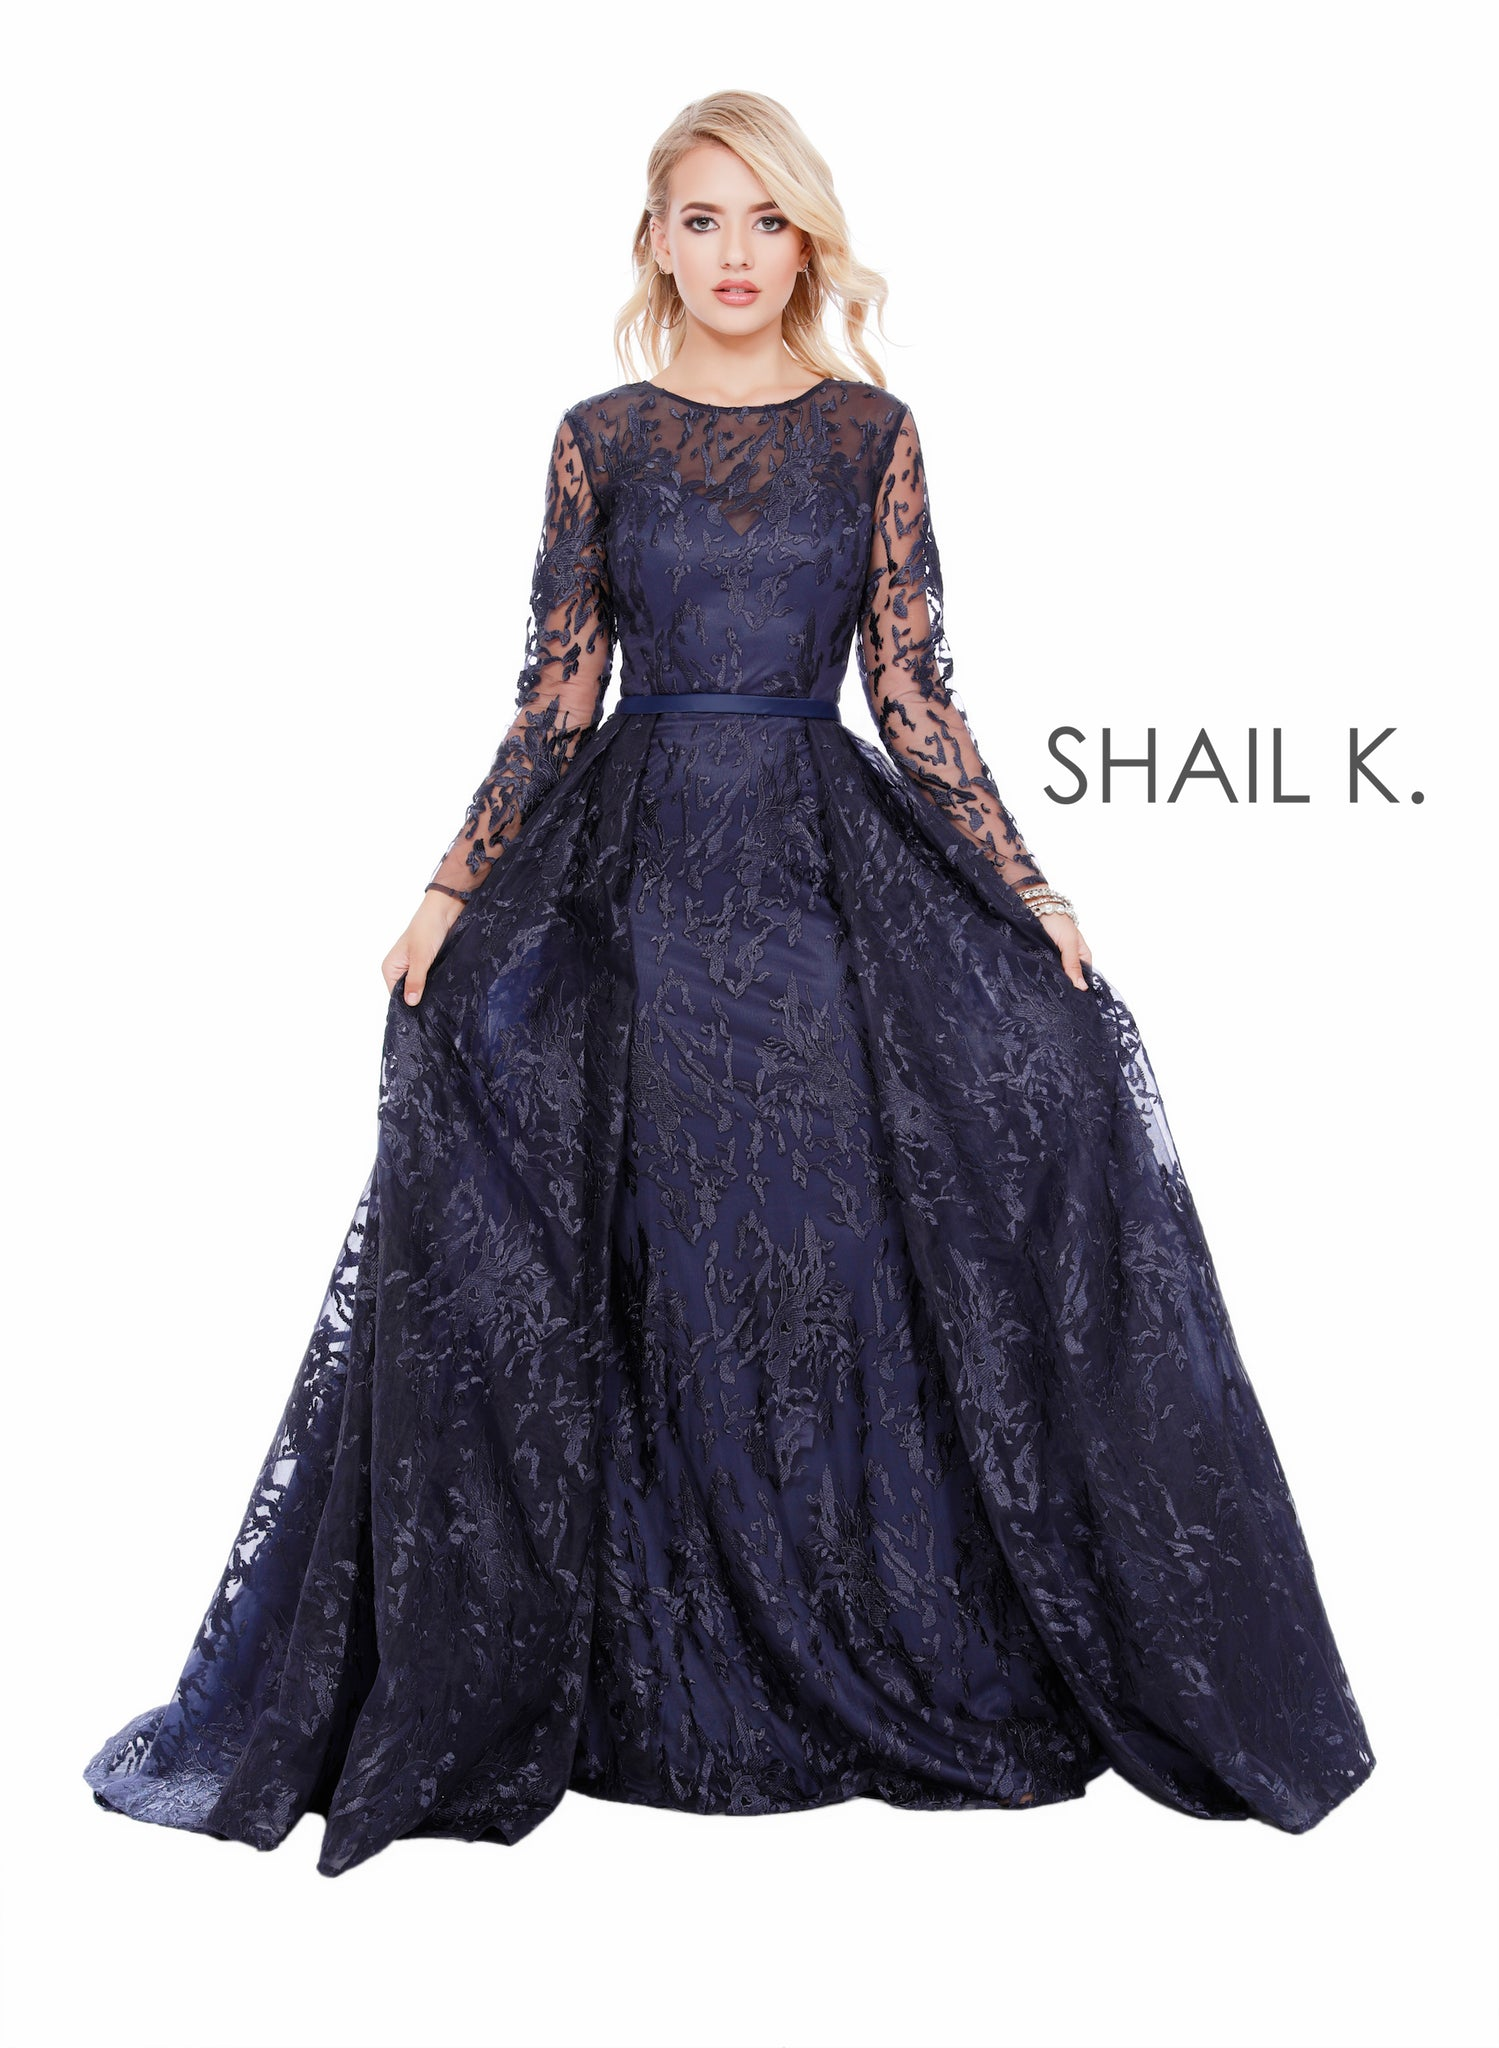 Long Sleeve Scoop Neck Sheer Illusion Couture Style Navy Dress 43916